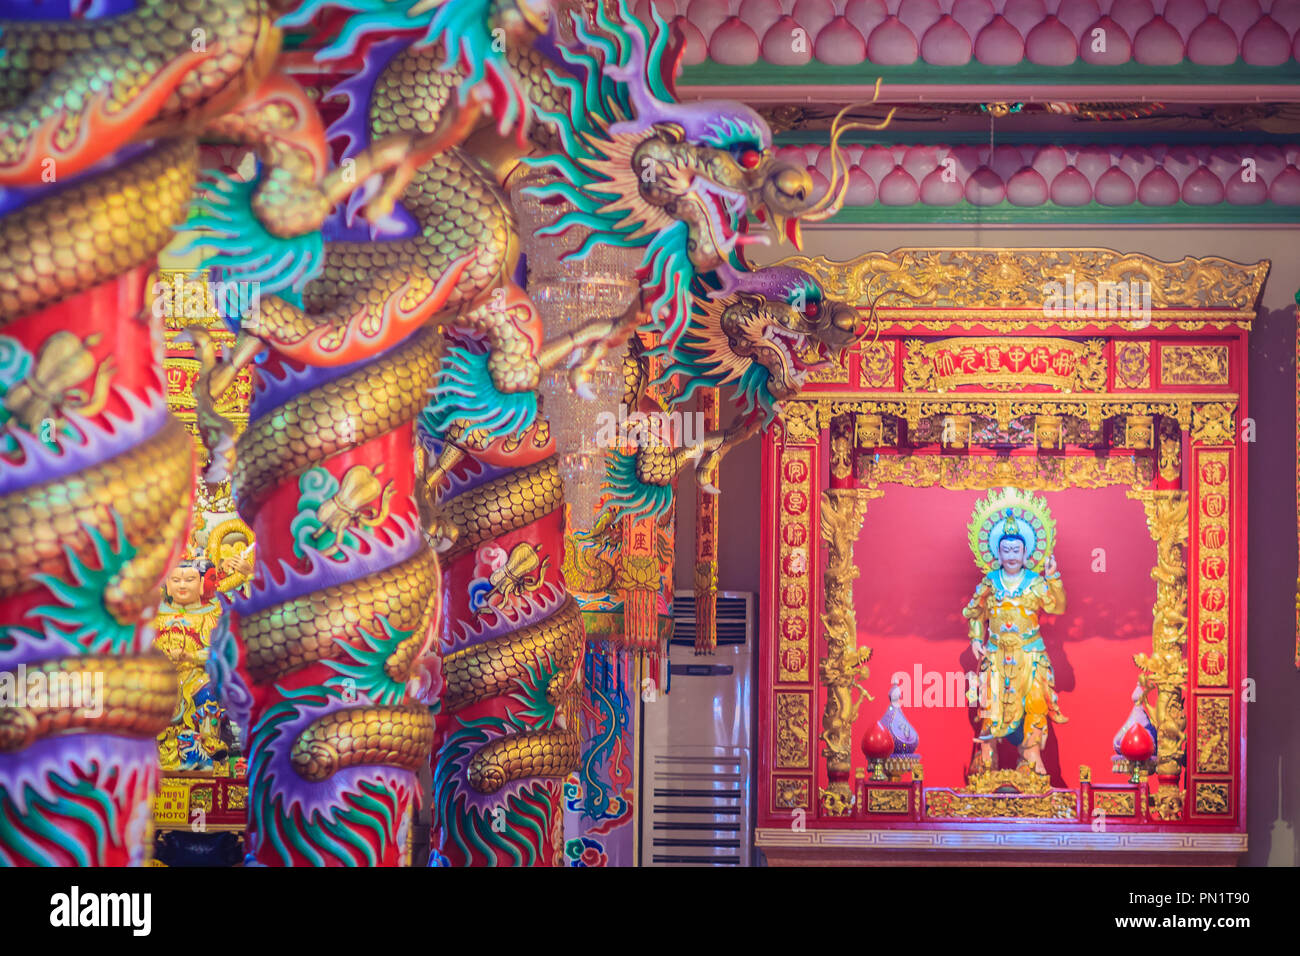 Chinese Folk Religion High Resolution Stock Photography And Images Alamy